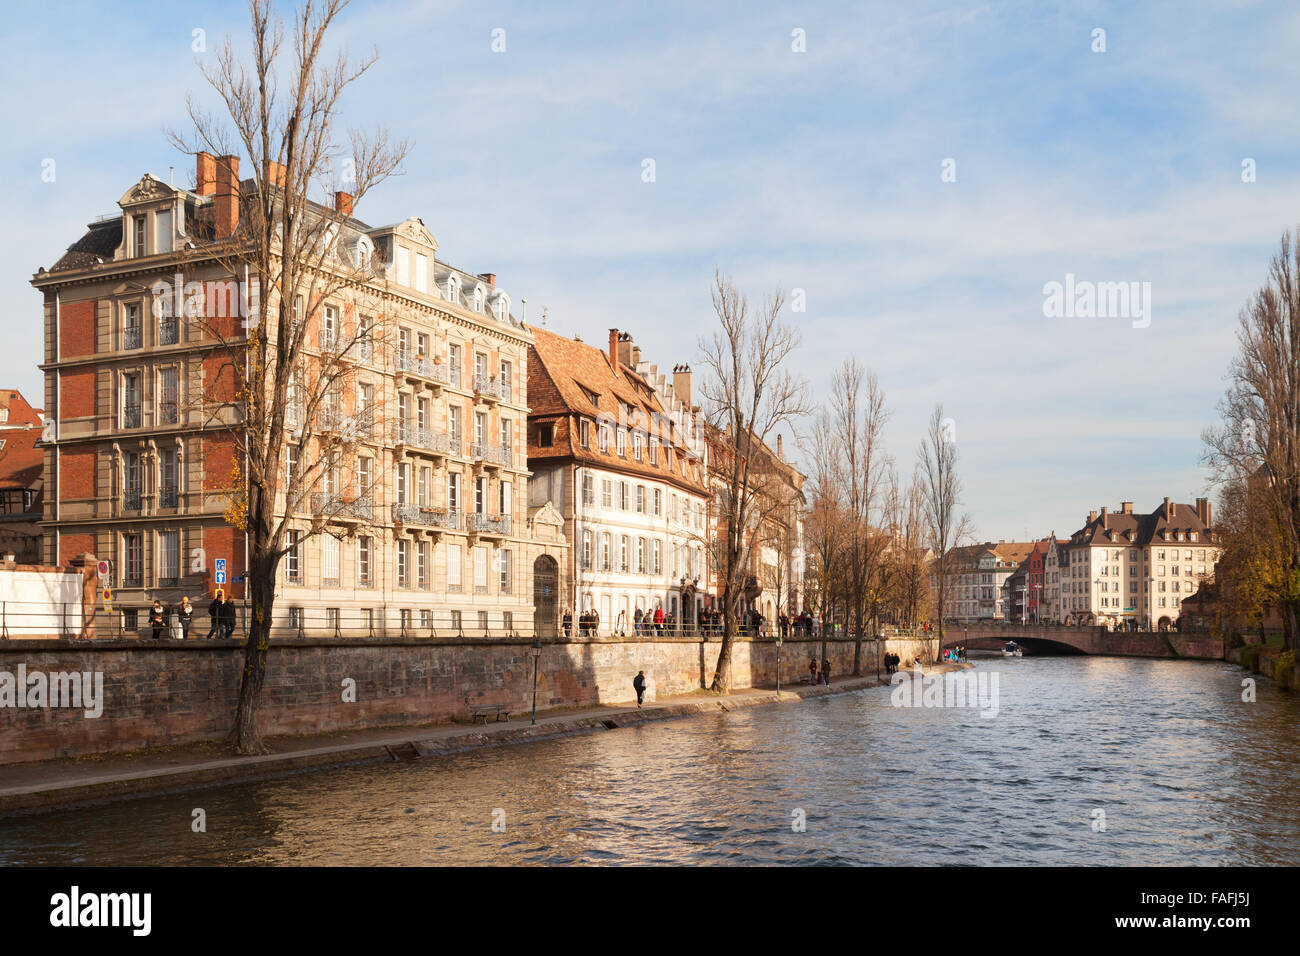 The River Ill flowing through Strasbourg Old Town, Strasbourg, Alsace France Europe - Stock Image